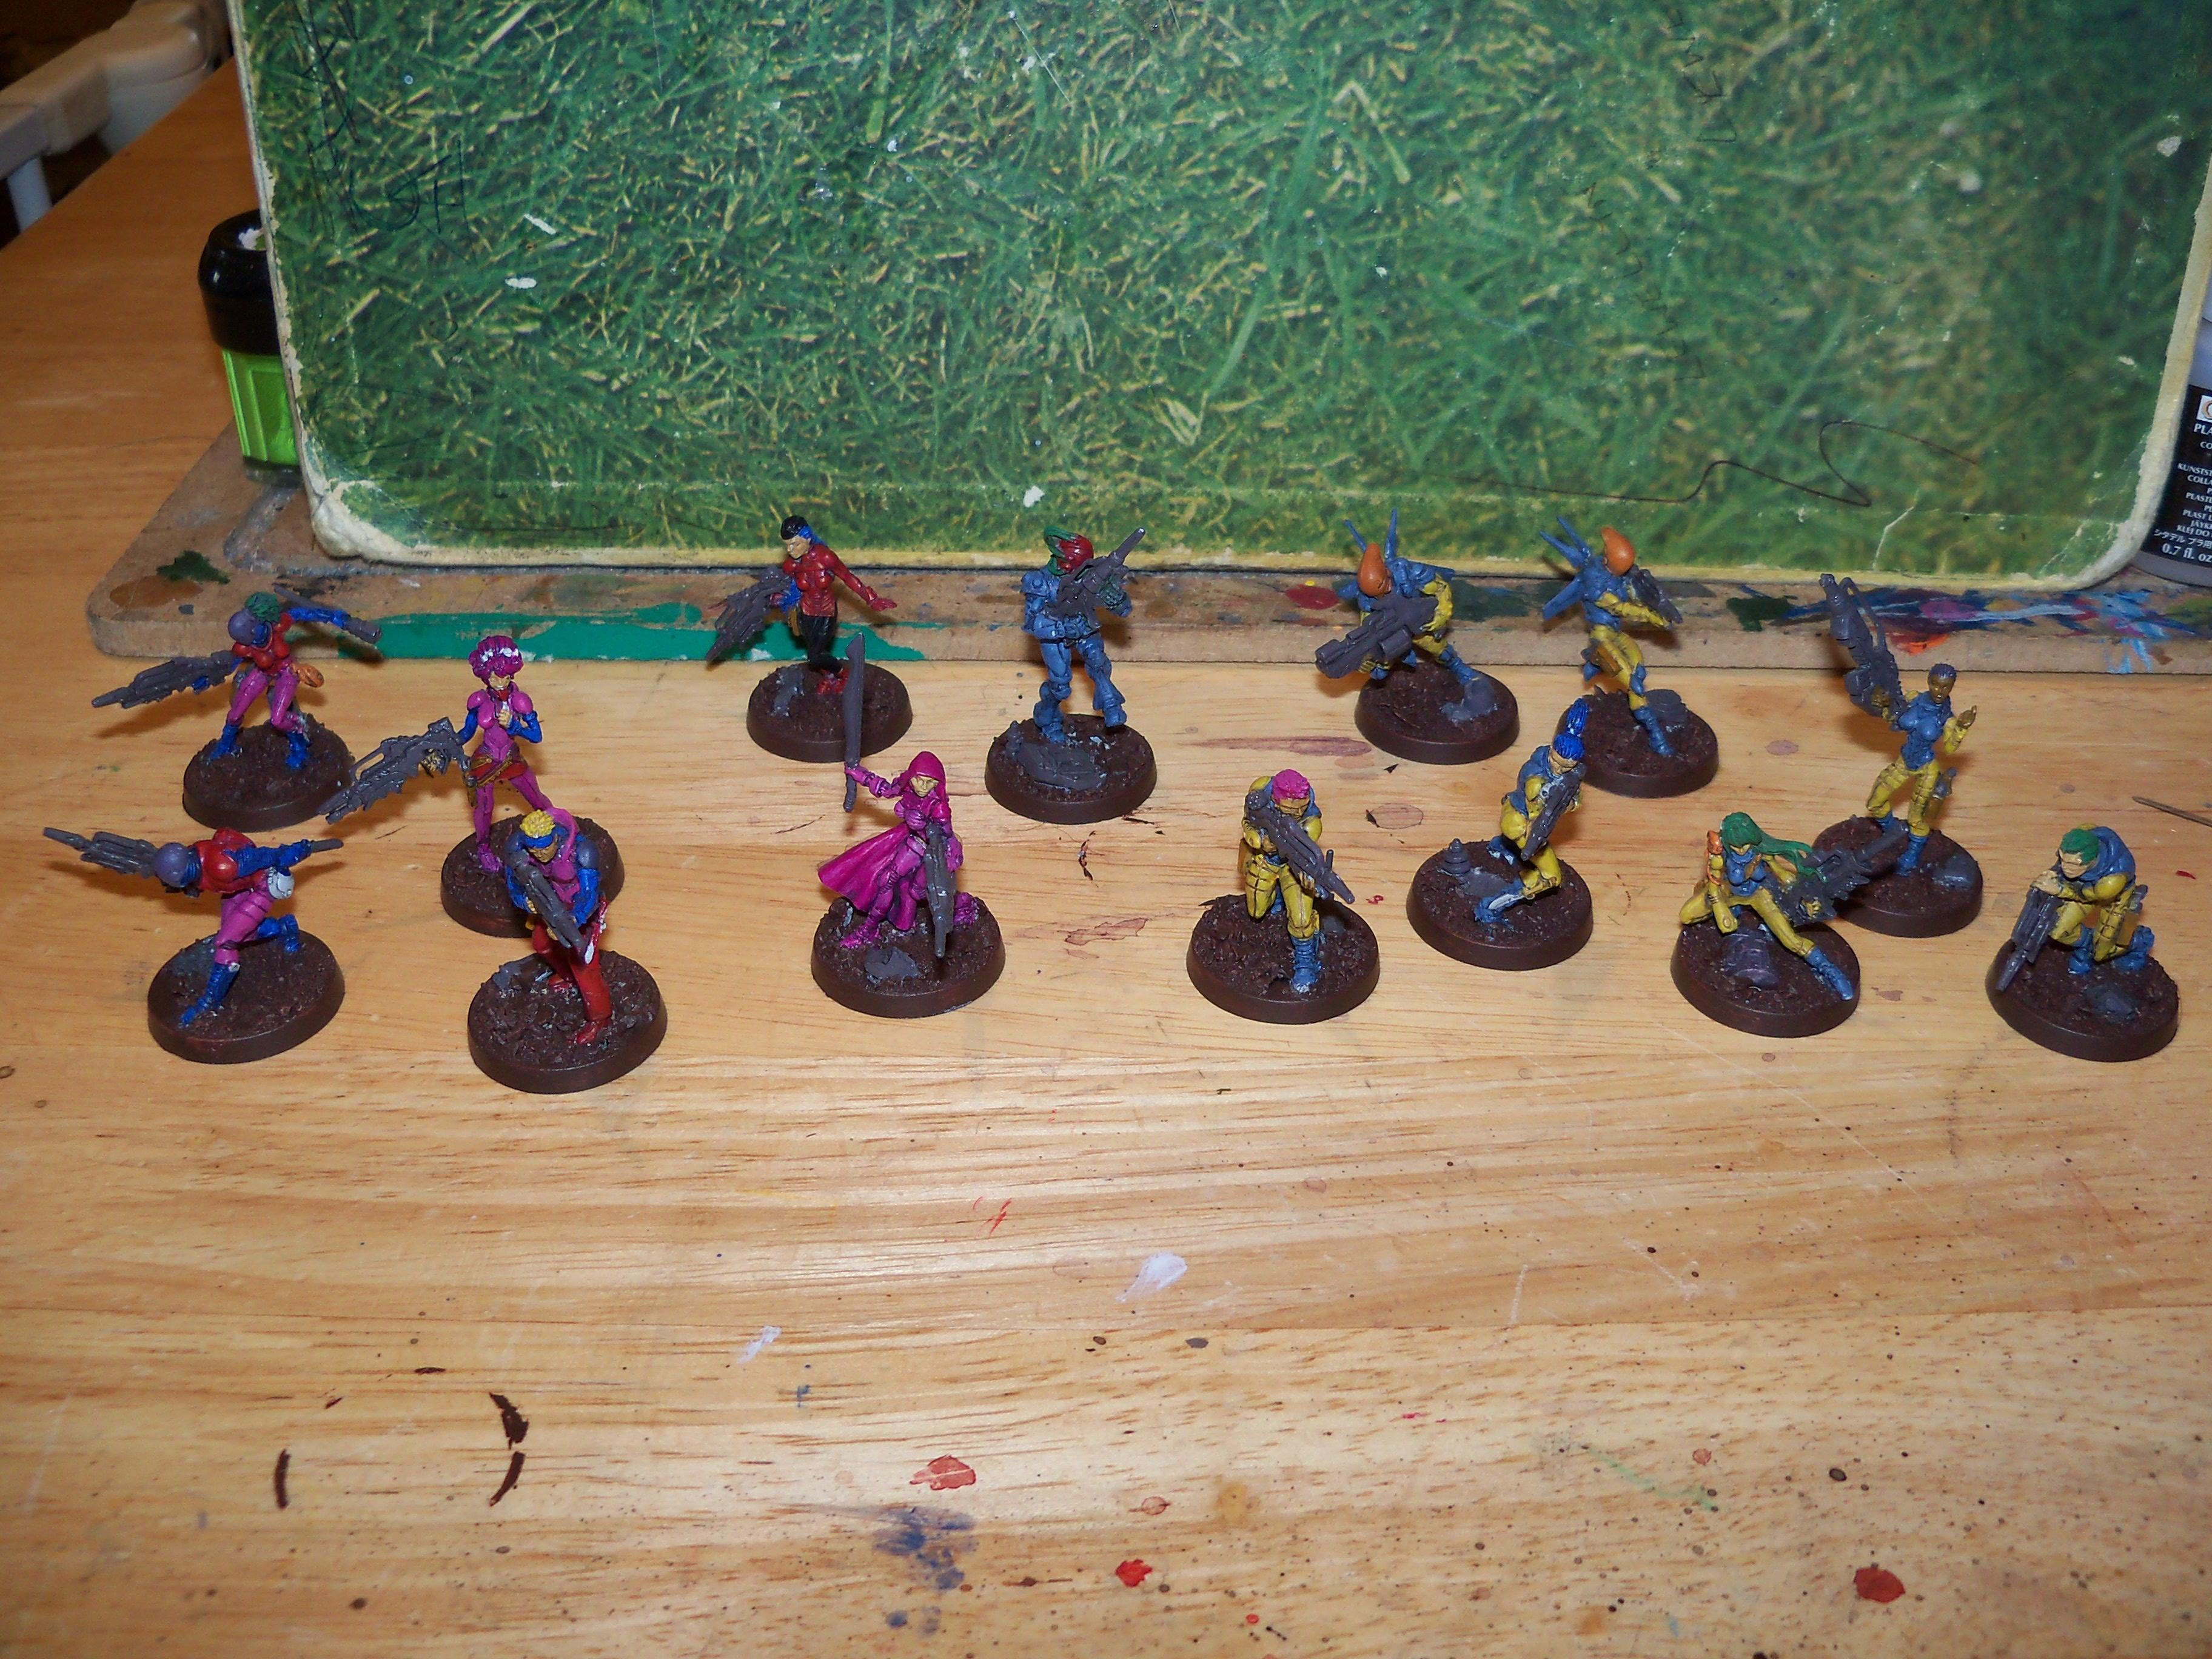 Infinity, Nomads, wip - group shot march 2012